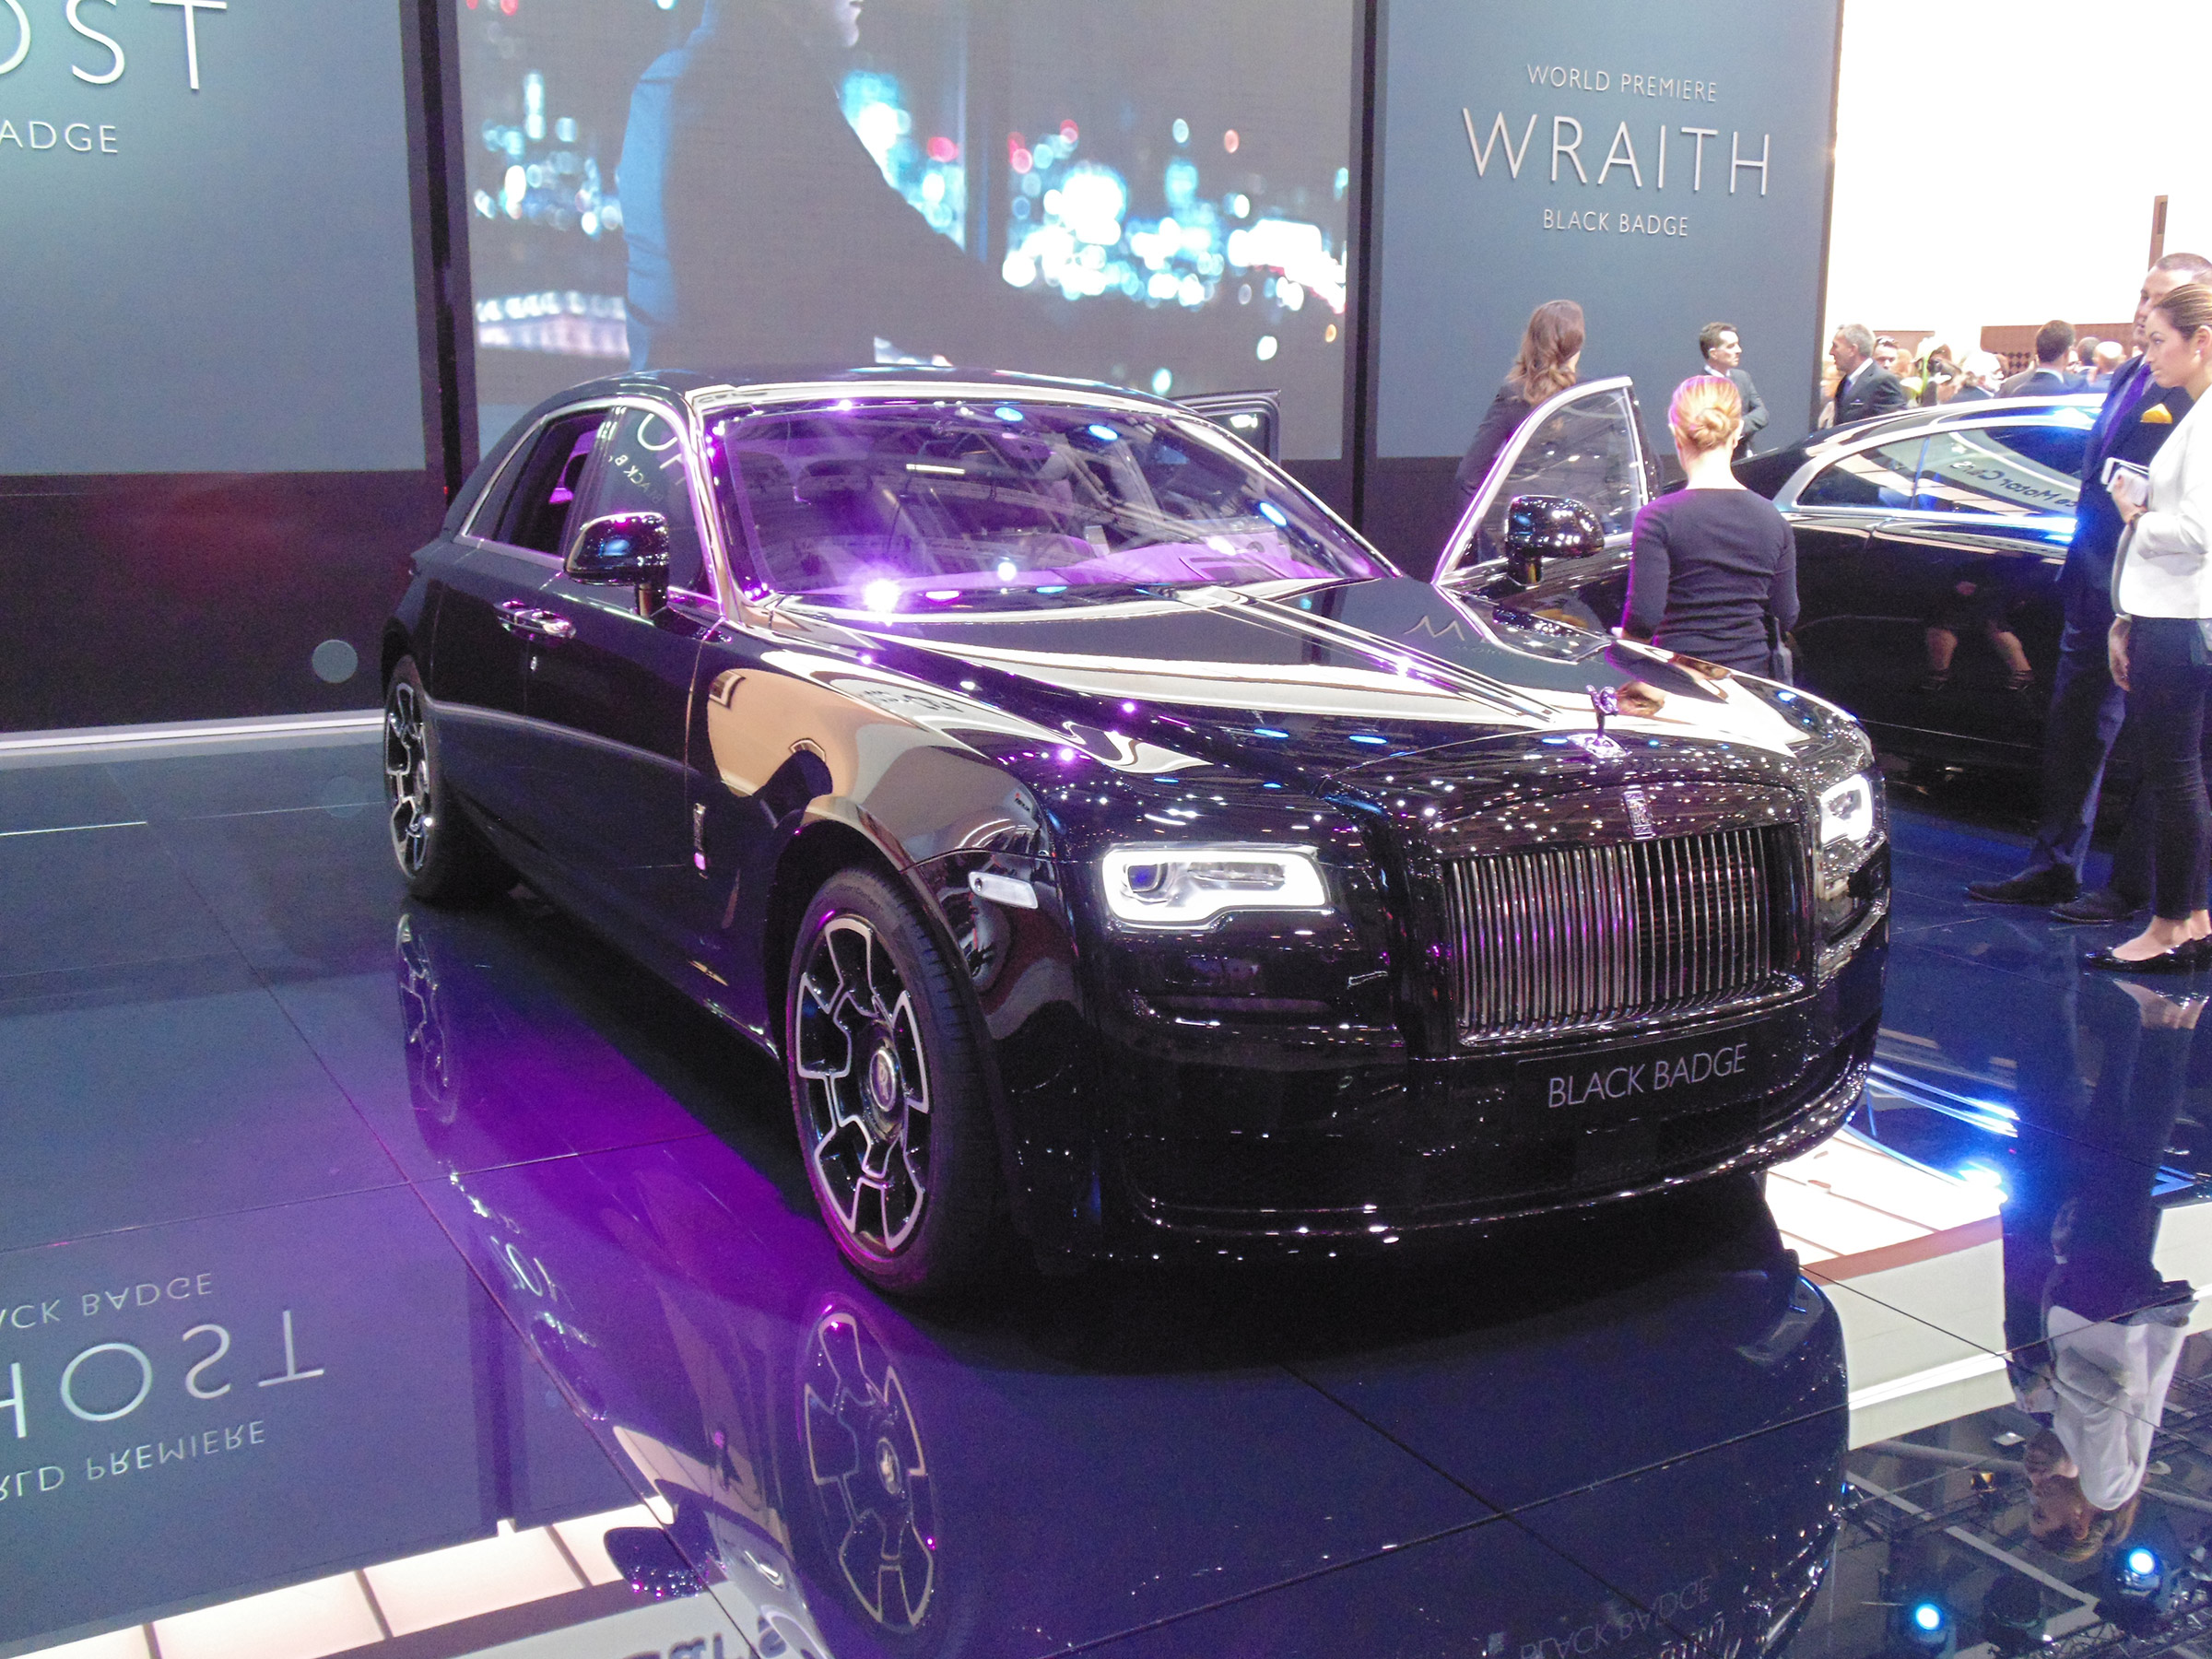 Rolls Royce Wraith And Ghost Black Badge Editions Launch In Geneva Auto Express